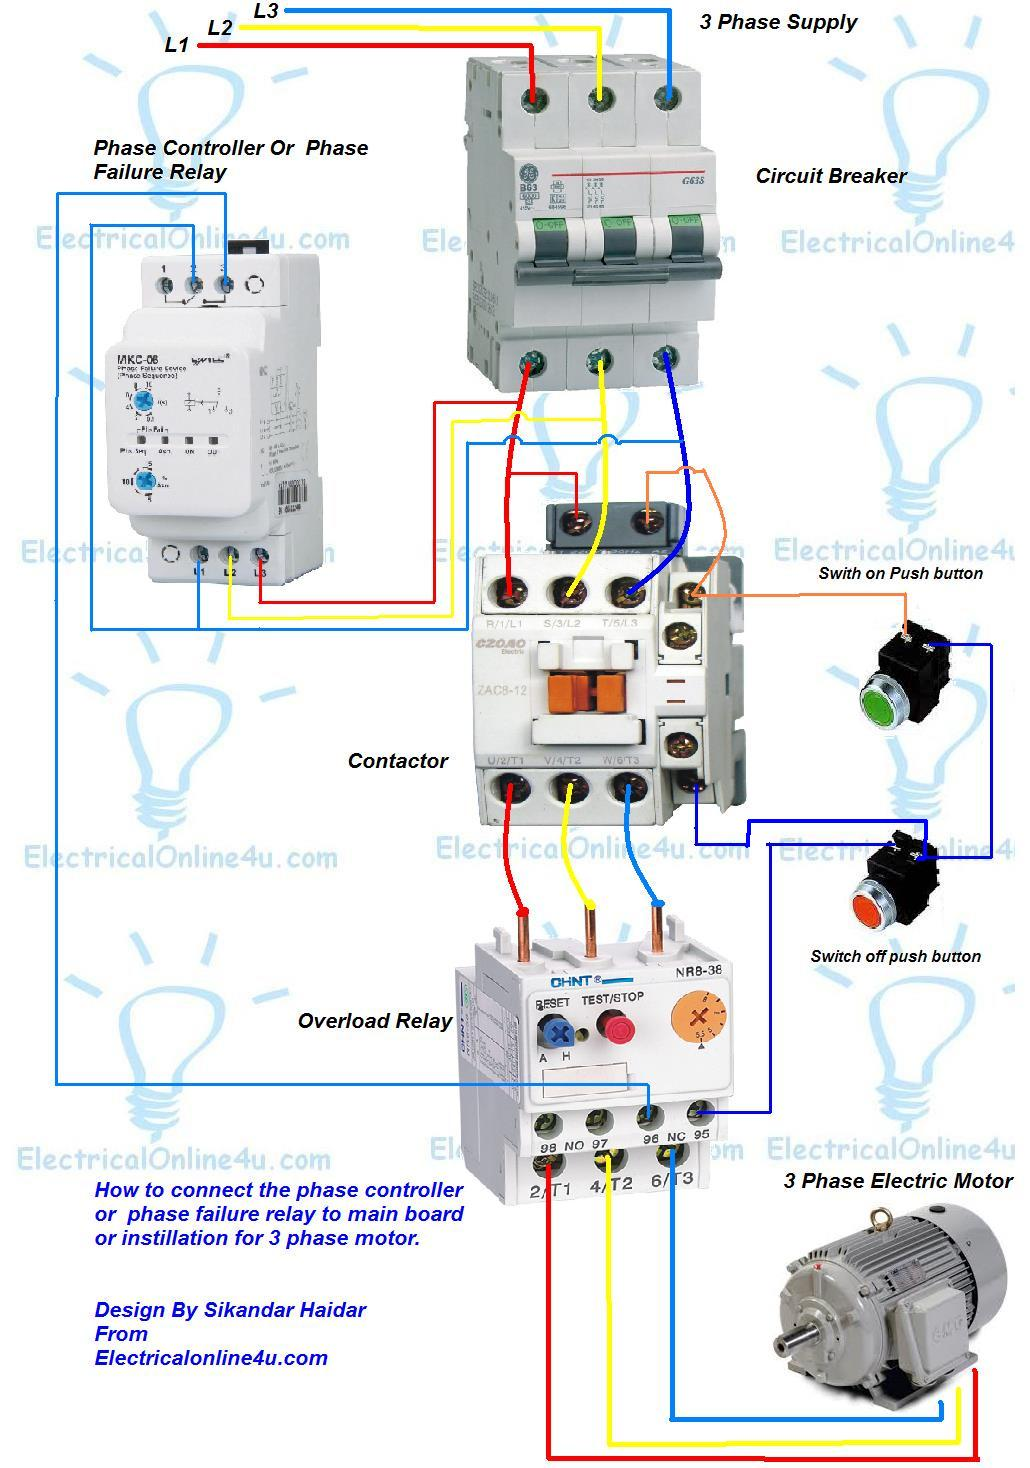 one light three switch electrical wiring diagram html with Phase Controller Phase Failure Relay Diagram on How To Wire 4 Way Switch as well SwitchesTut additionally Wiring Diagrams 3way 4 further Forward Reverse 3 Phase Ac Motor moreover 551757 Ge 12722 Zwave 12723 4way Wiring.